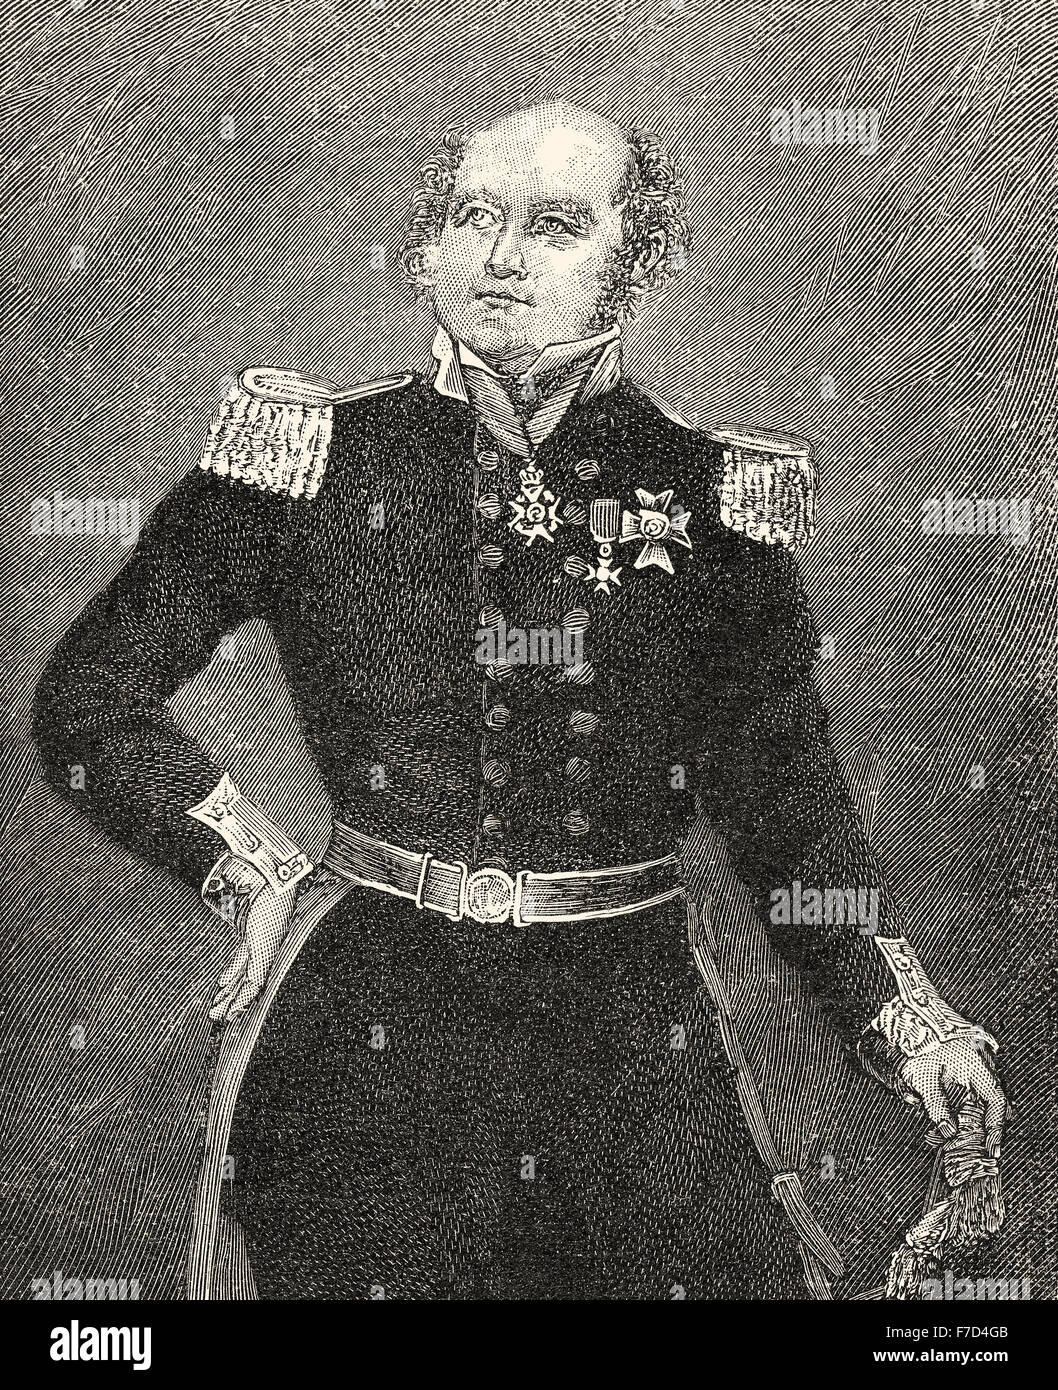 Rear-Admiral Sir John Franklin, 1786-1847, a British Royal Navy officer and explorer of the Arctic, - Stock Image